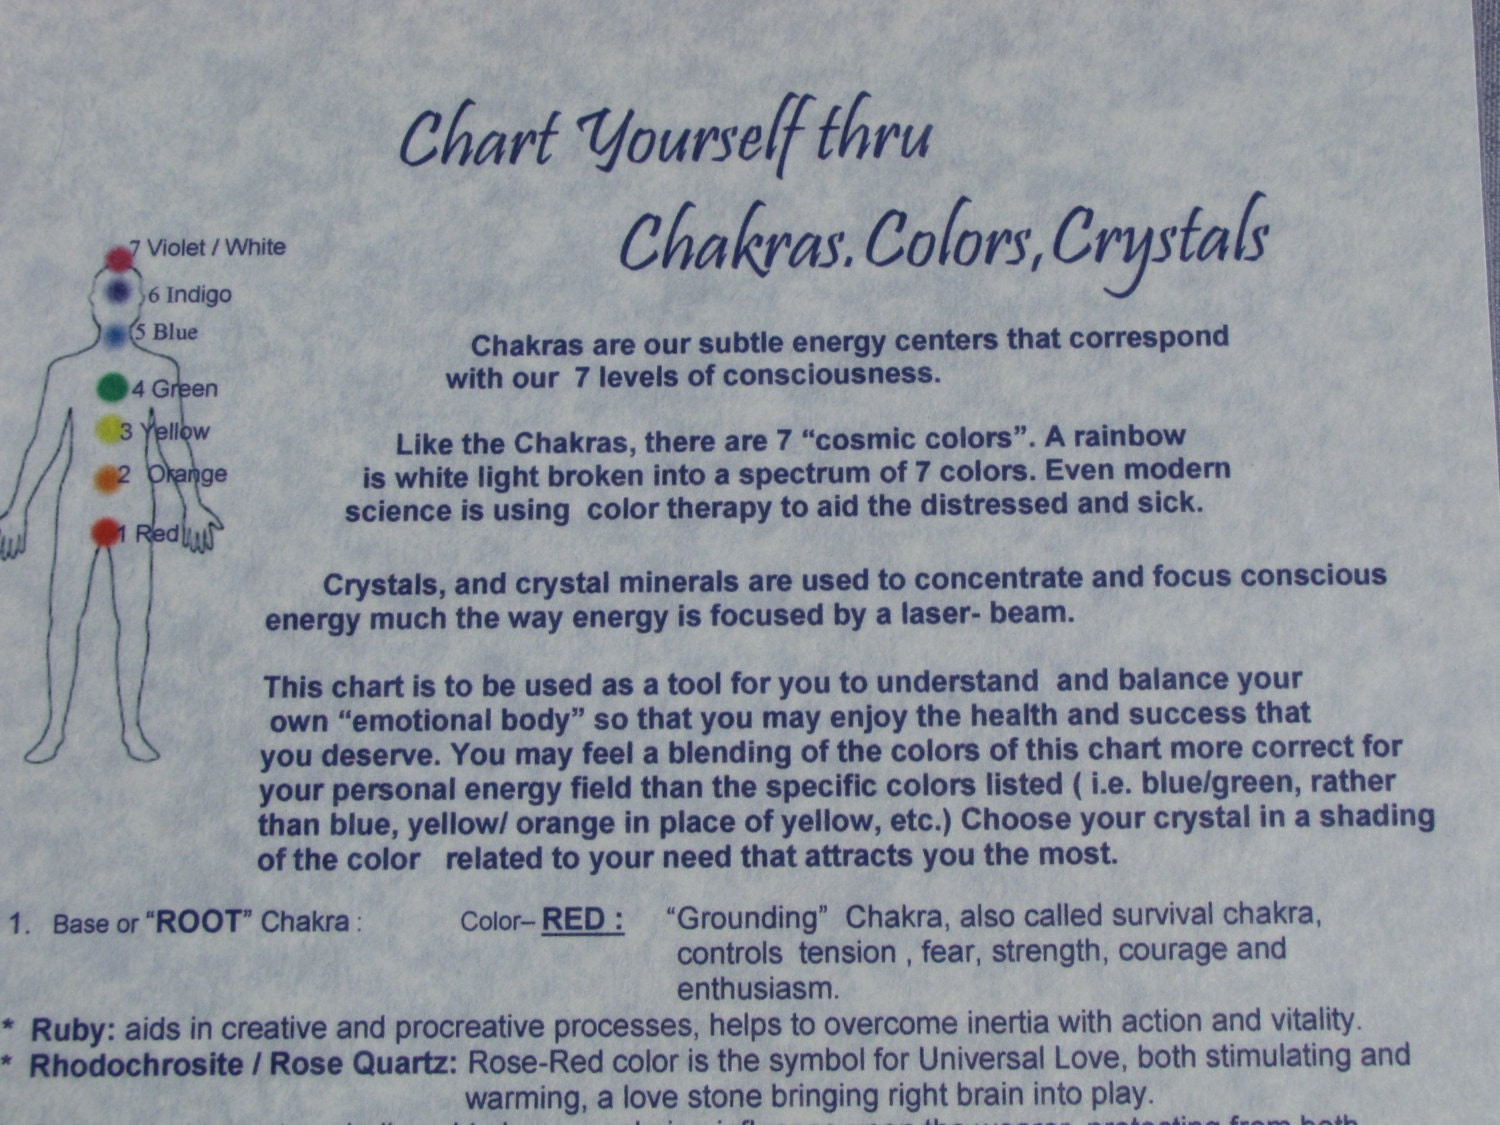 Chakras colors crystals self help pdf chart downloadable zoom geenschuldenfo Images